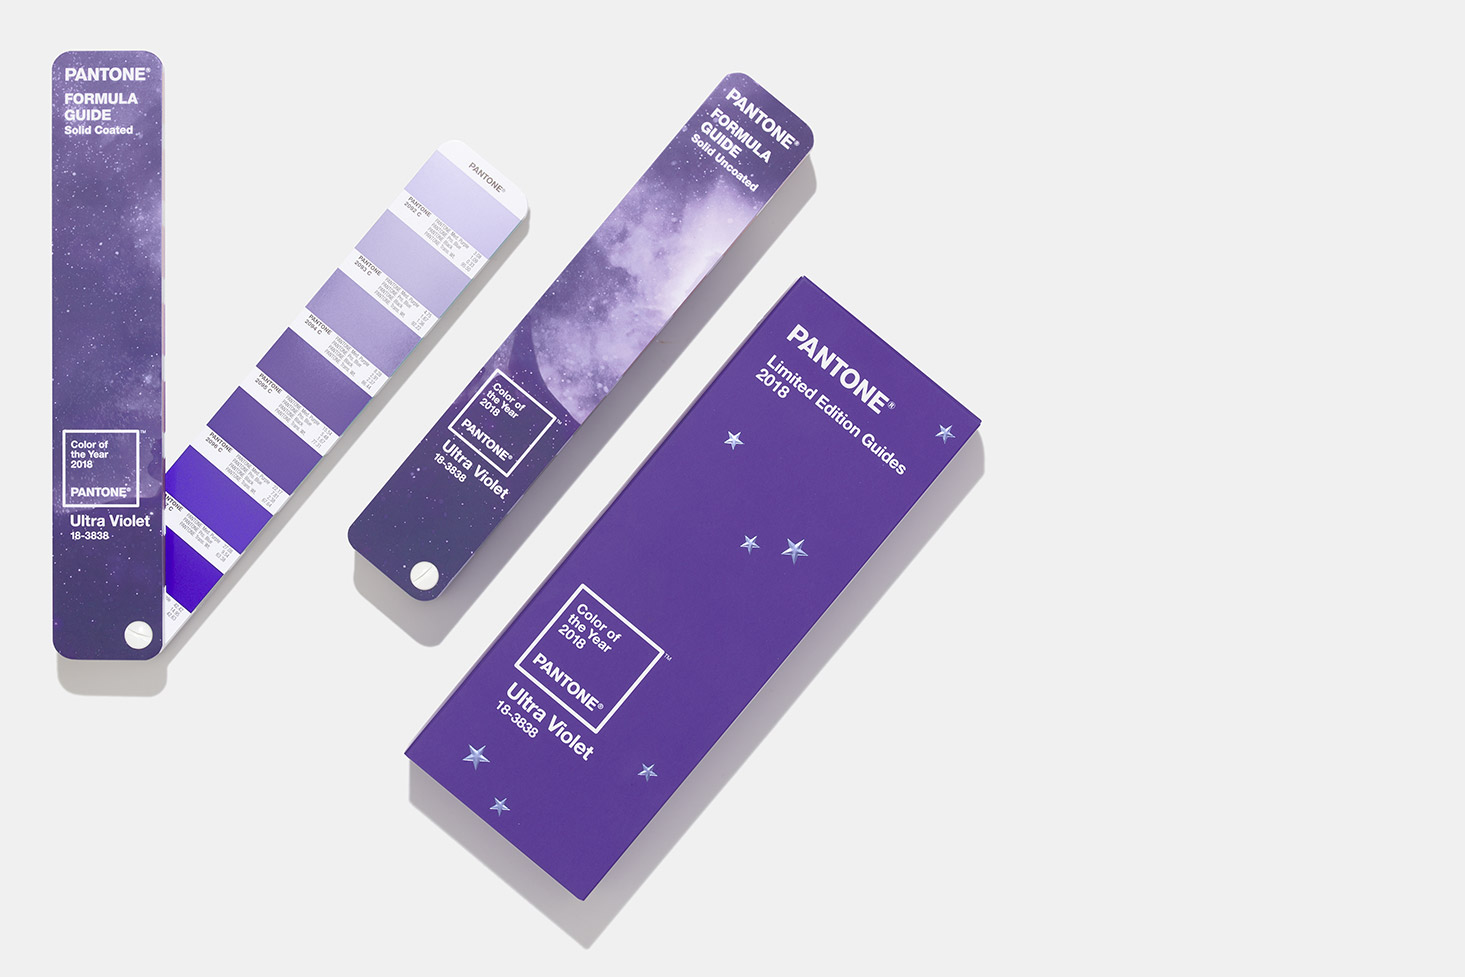 Ultra Violet Pantone It 39s Electric Pantone 39s Color Of The Year Ultraviolet Is